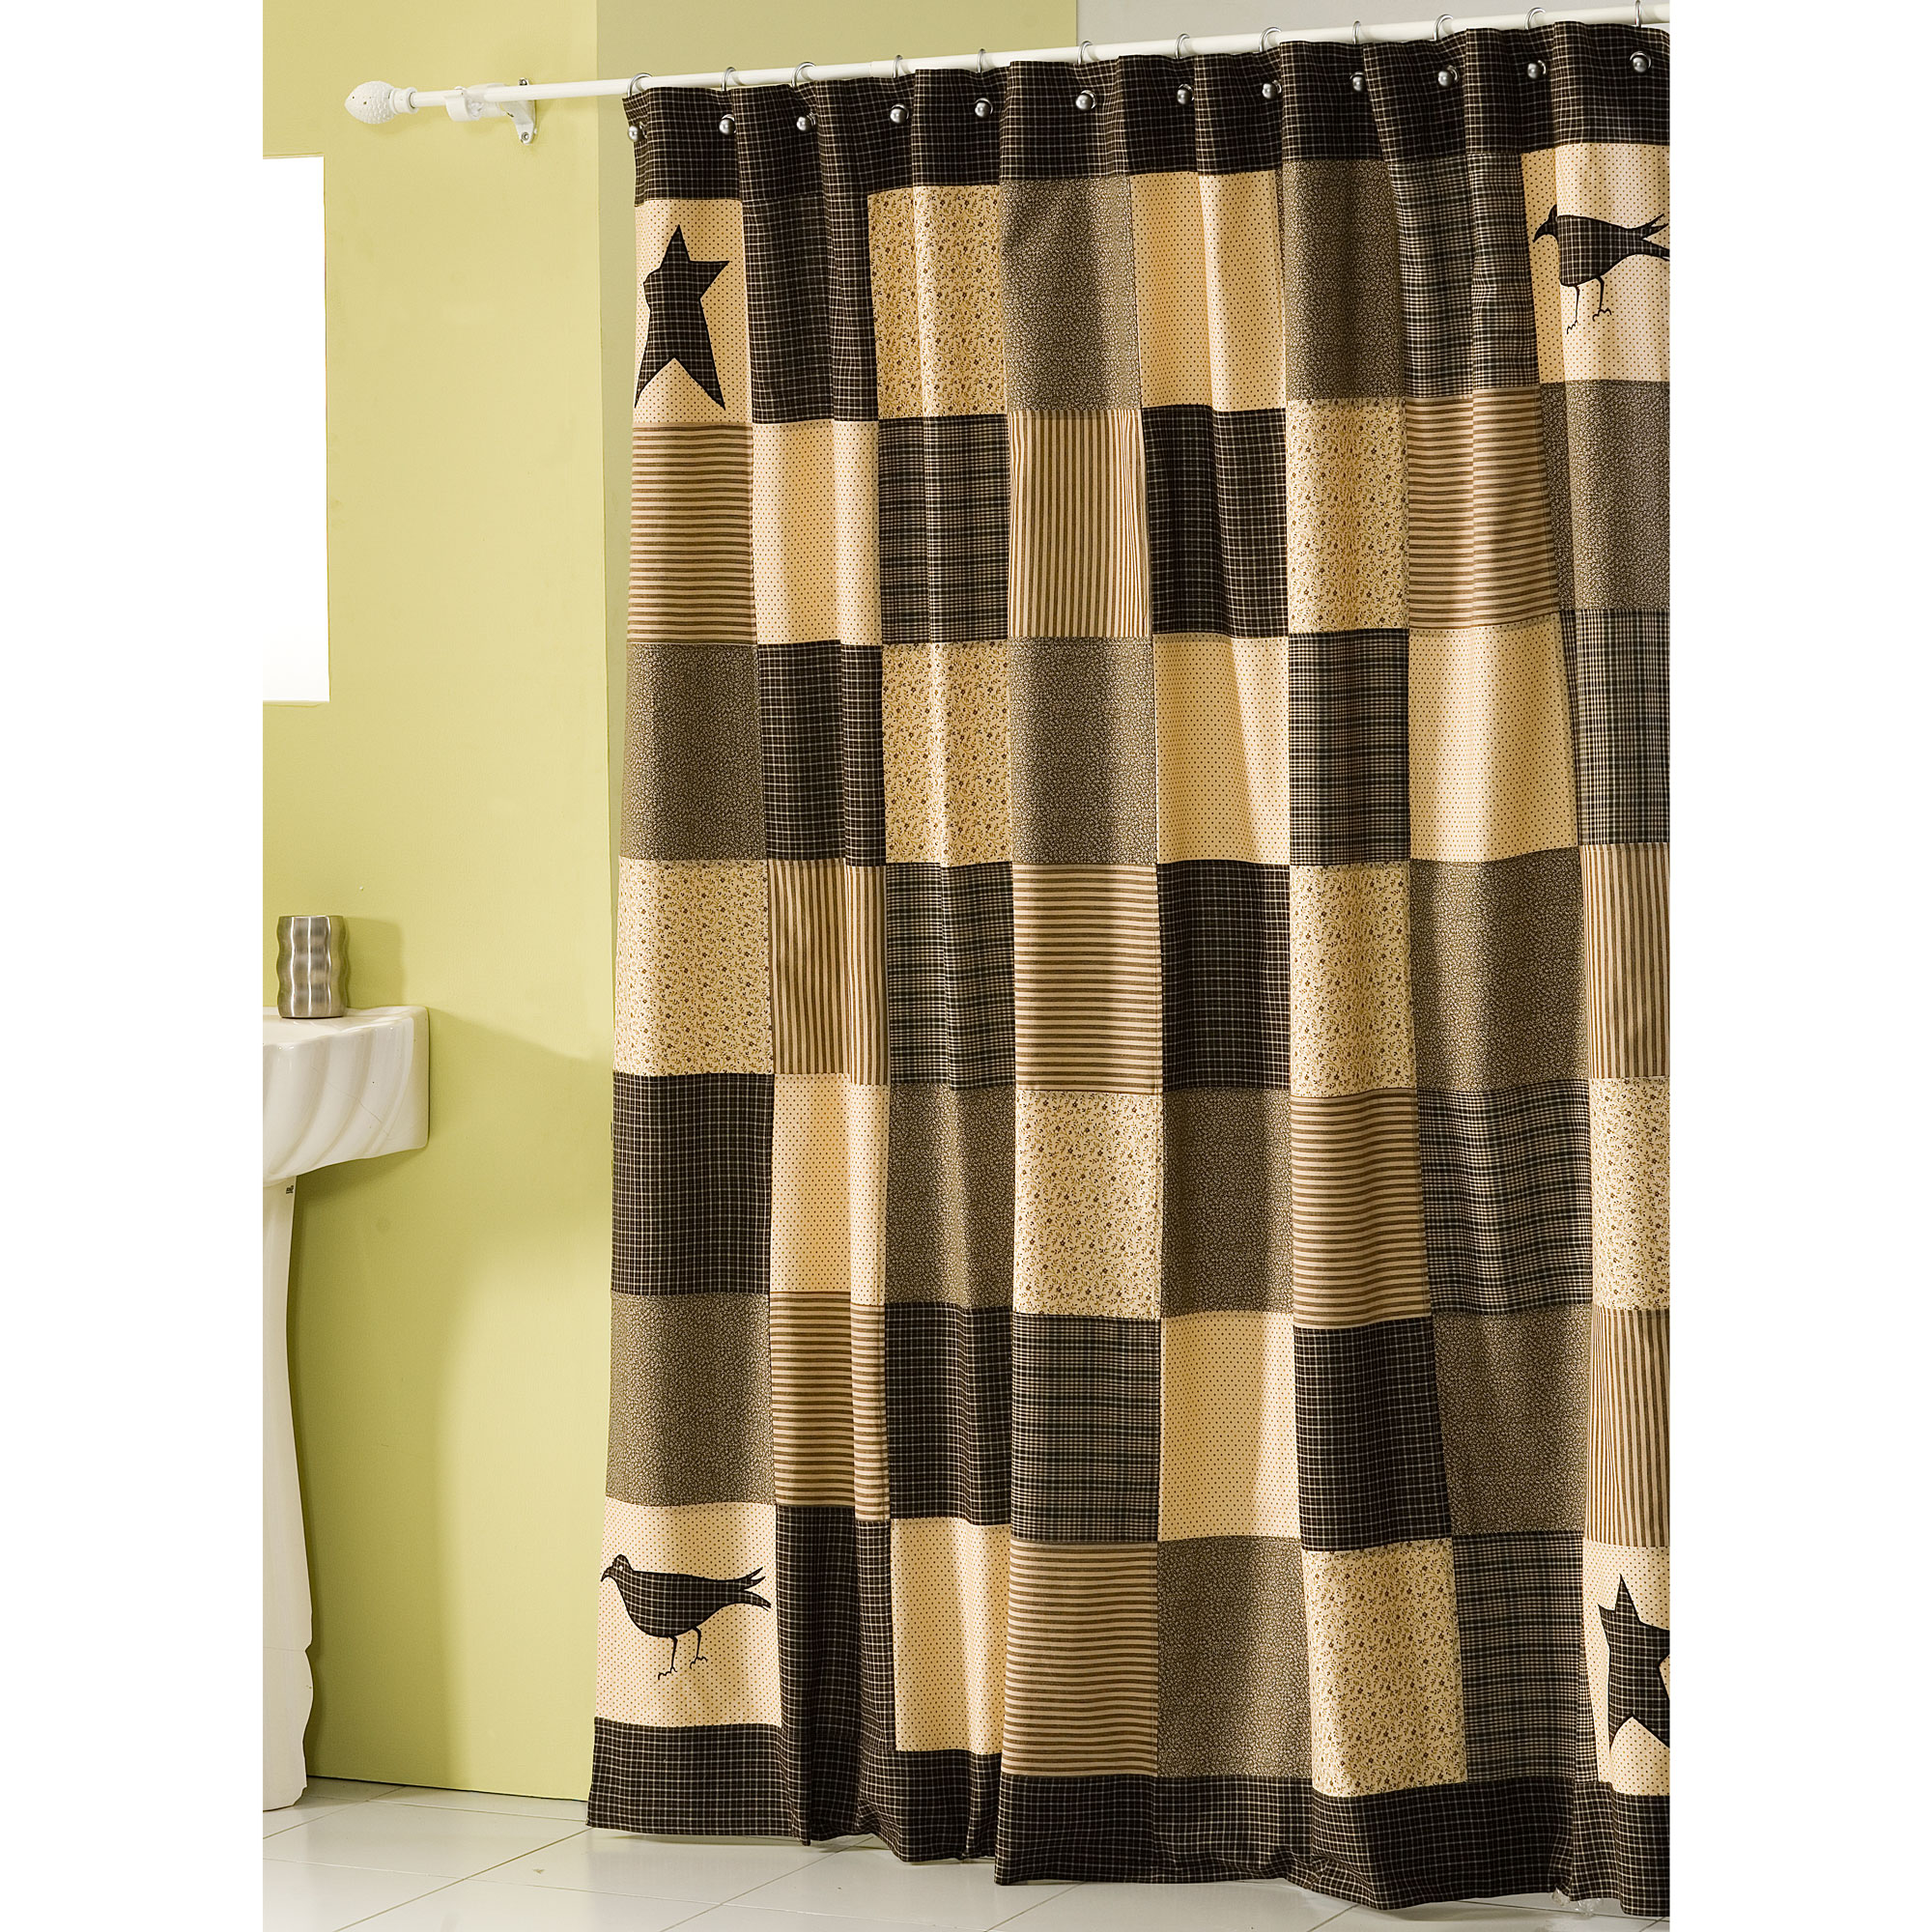 Black and tan shower curtains - Black And Tan Shower Curtains 47